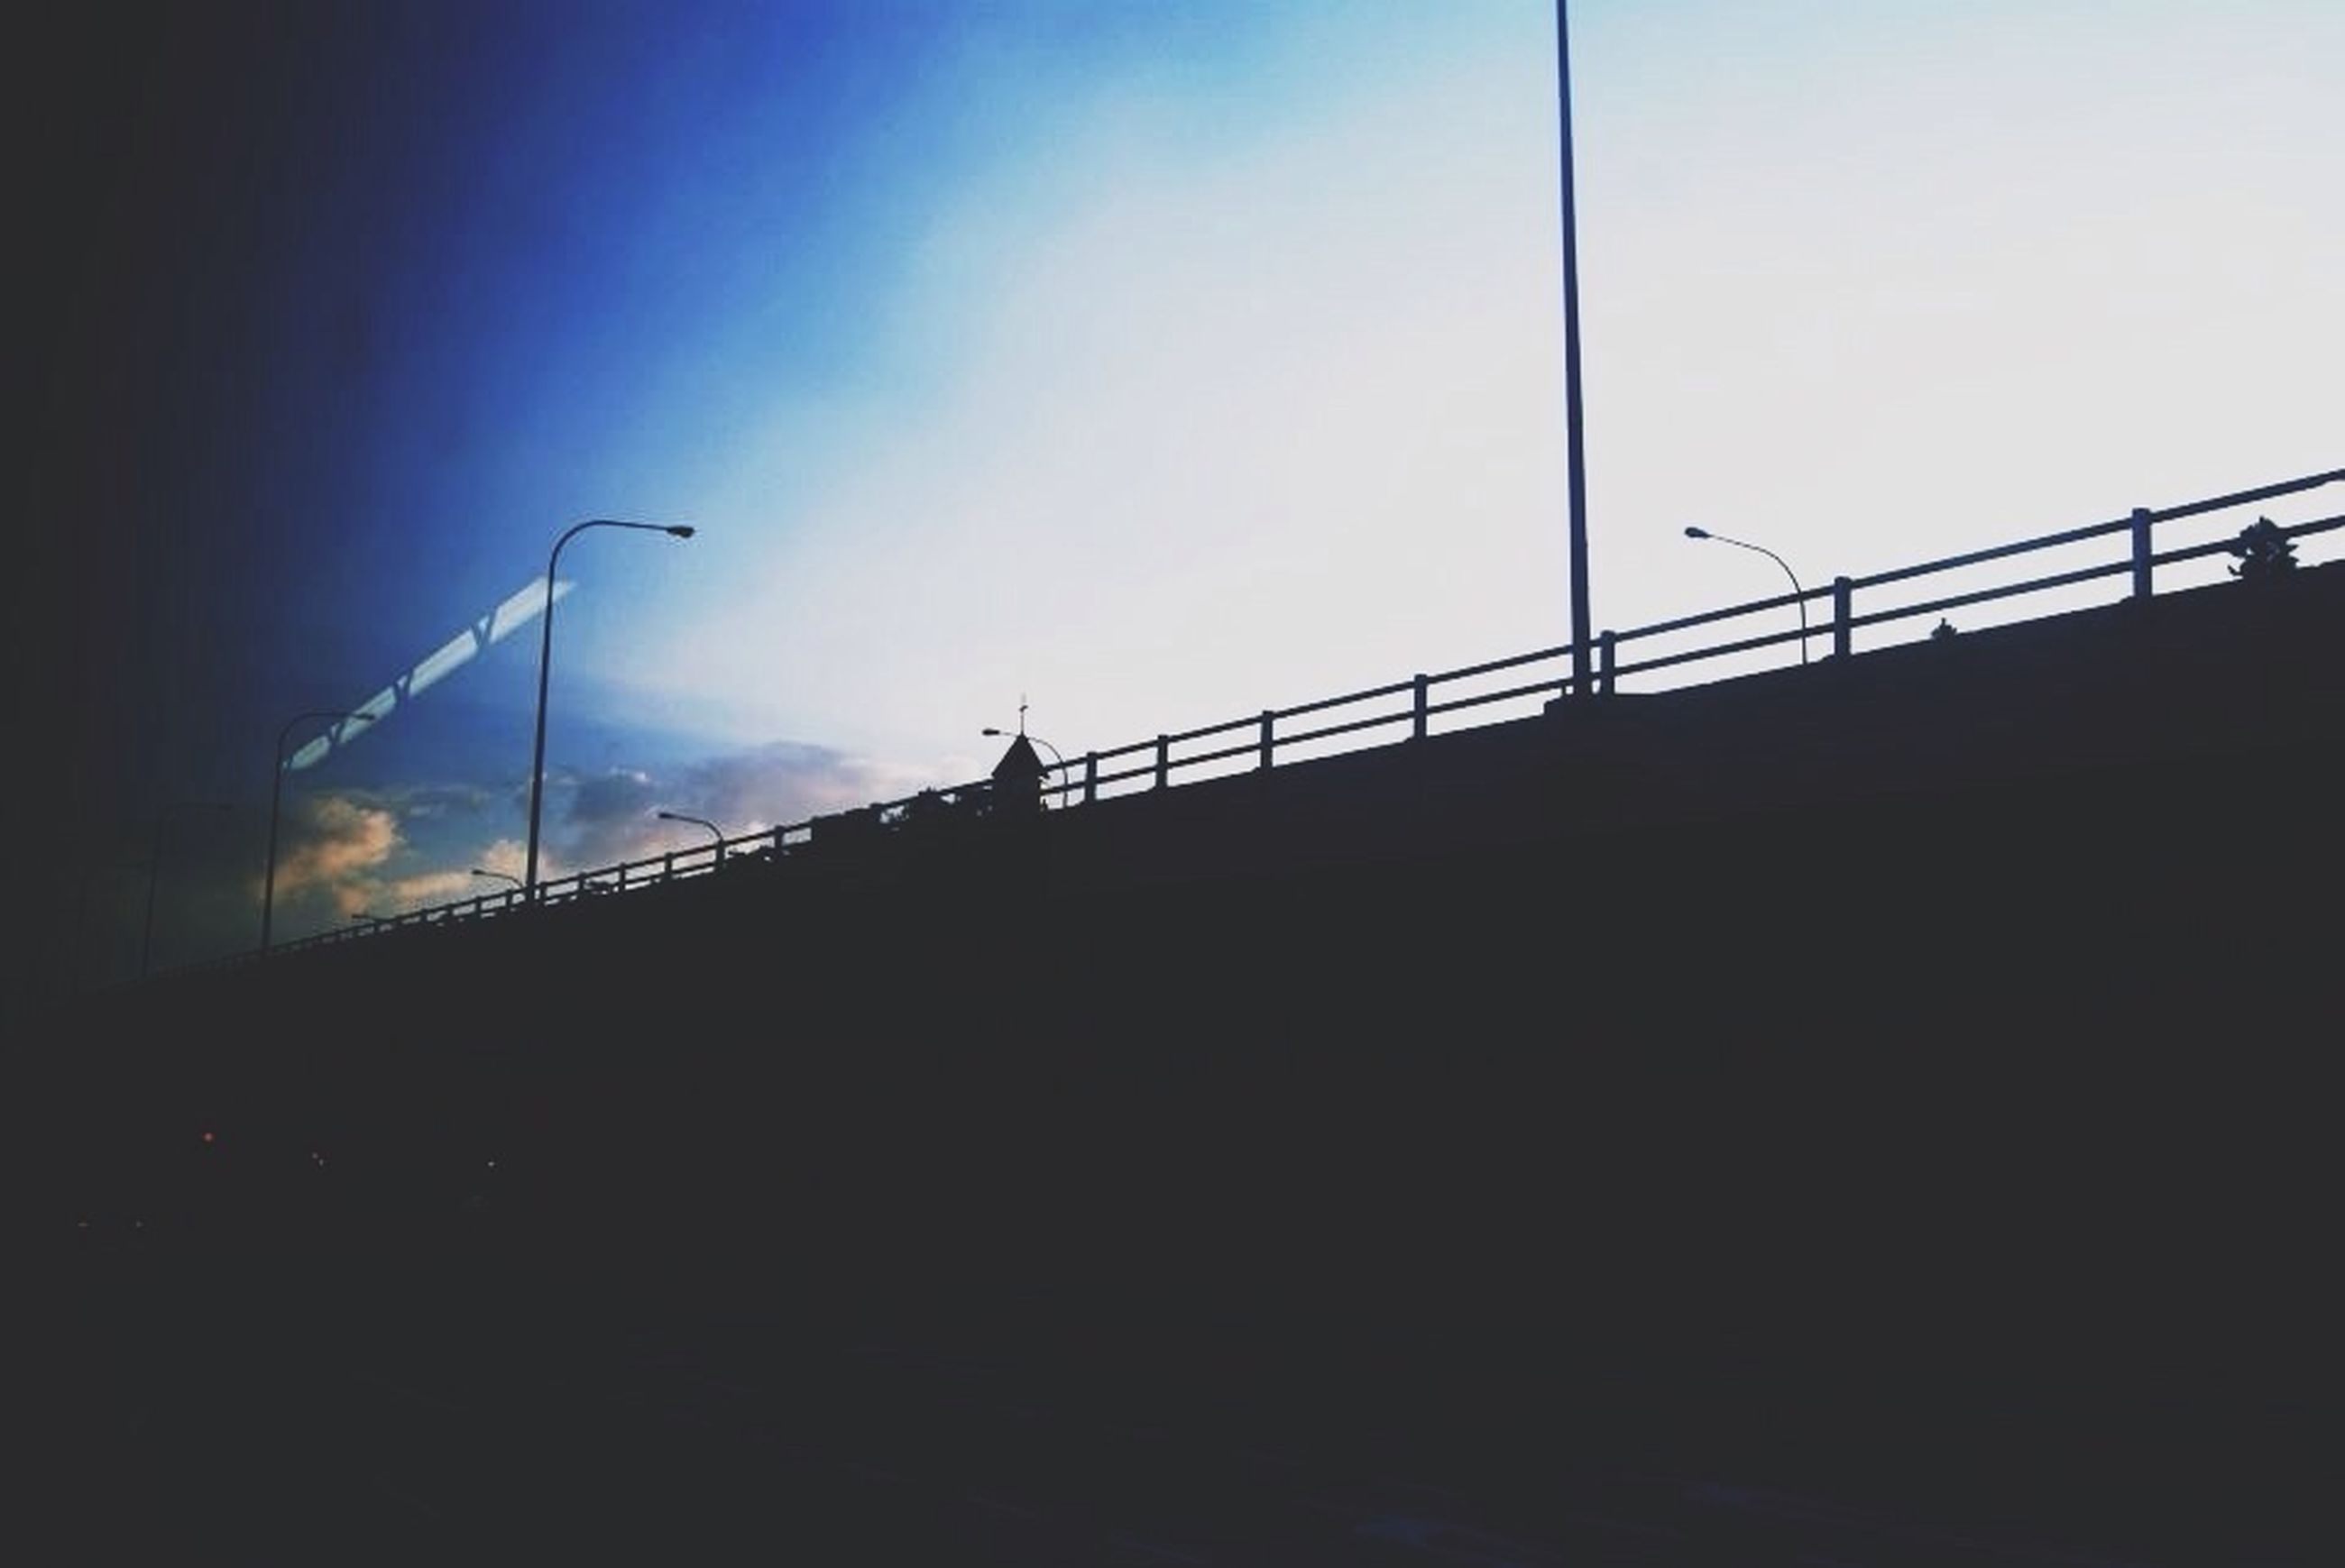 silhouette, railing, built structure, sky, low angle view, architecture, copy space, connection, bridge - man made structure, clear sky, dusk, bridge, street light, sunlight, sunset, outdoors, building exterior, day